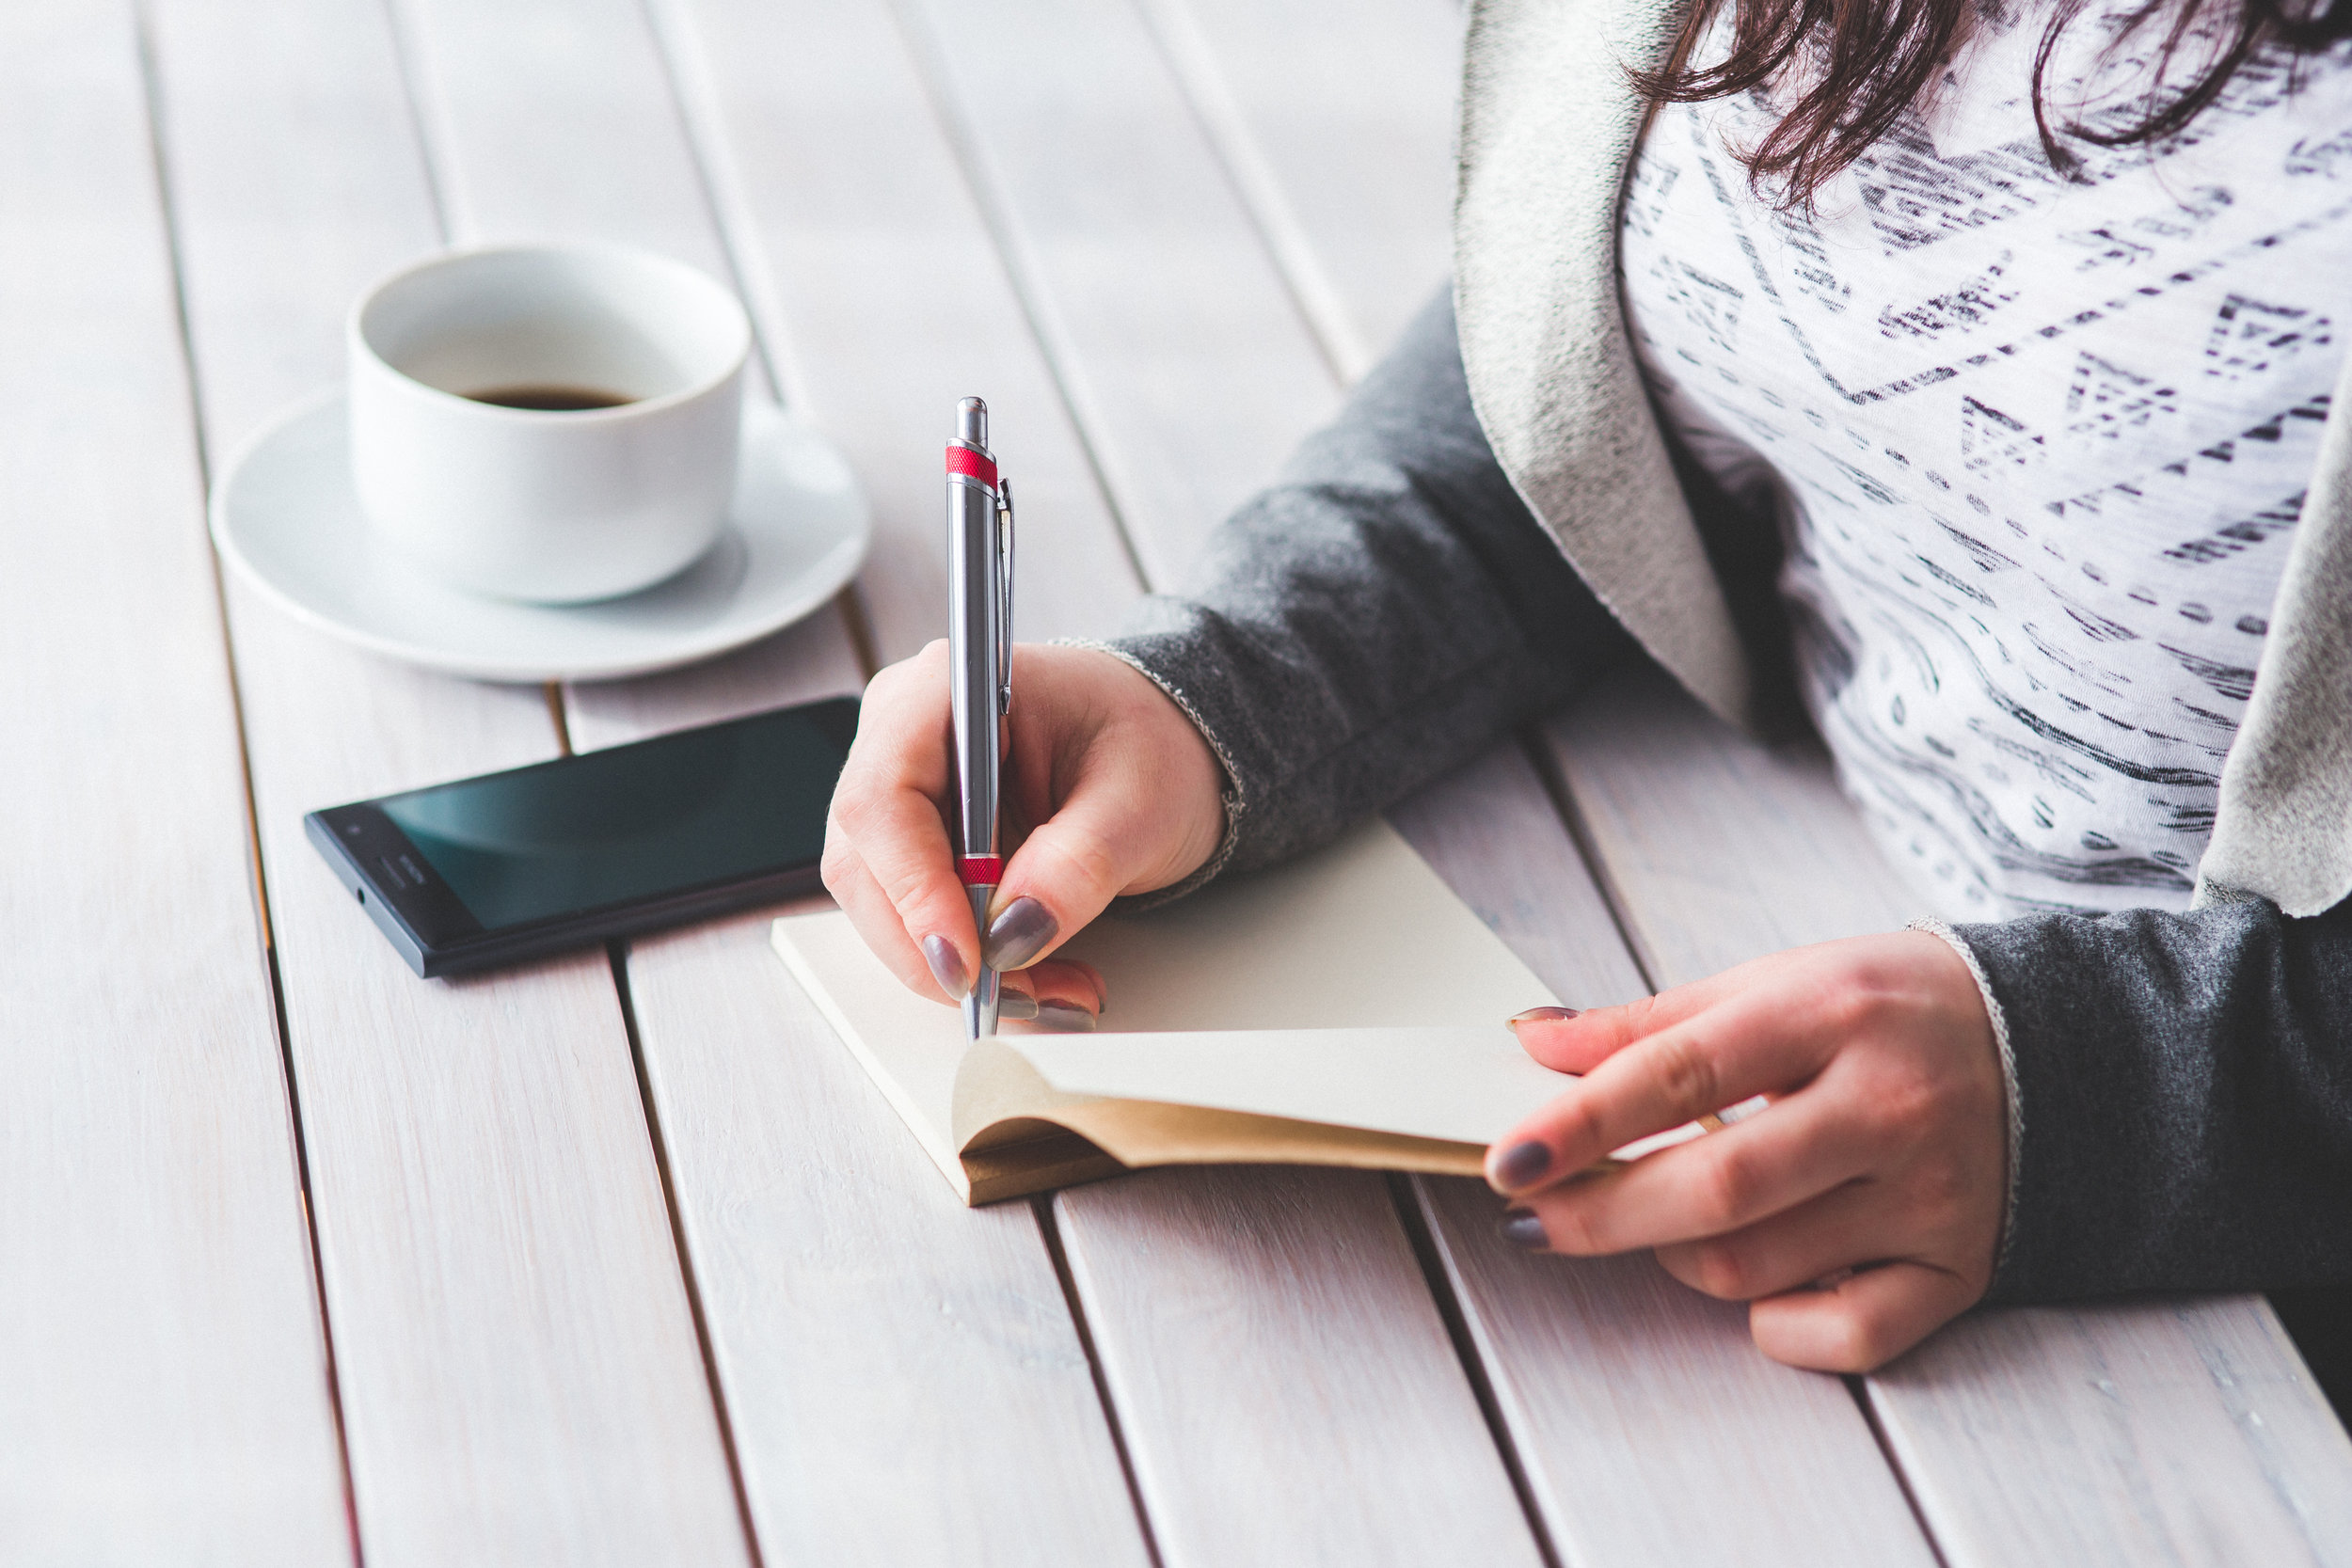 Canva - Woman's hand using a pen noting on notepad.jpg